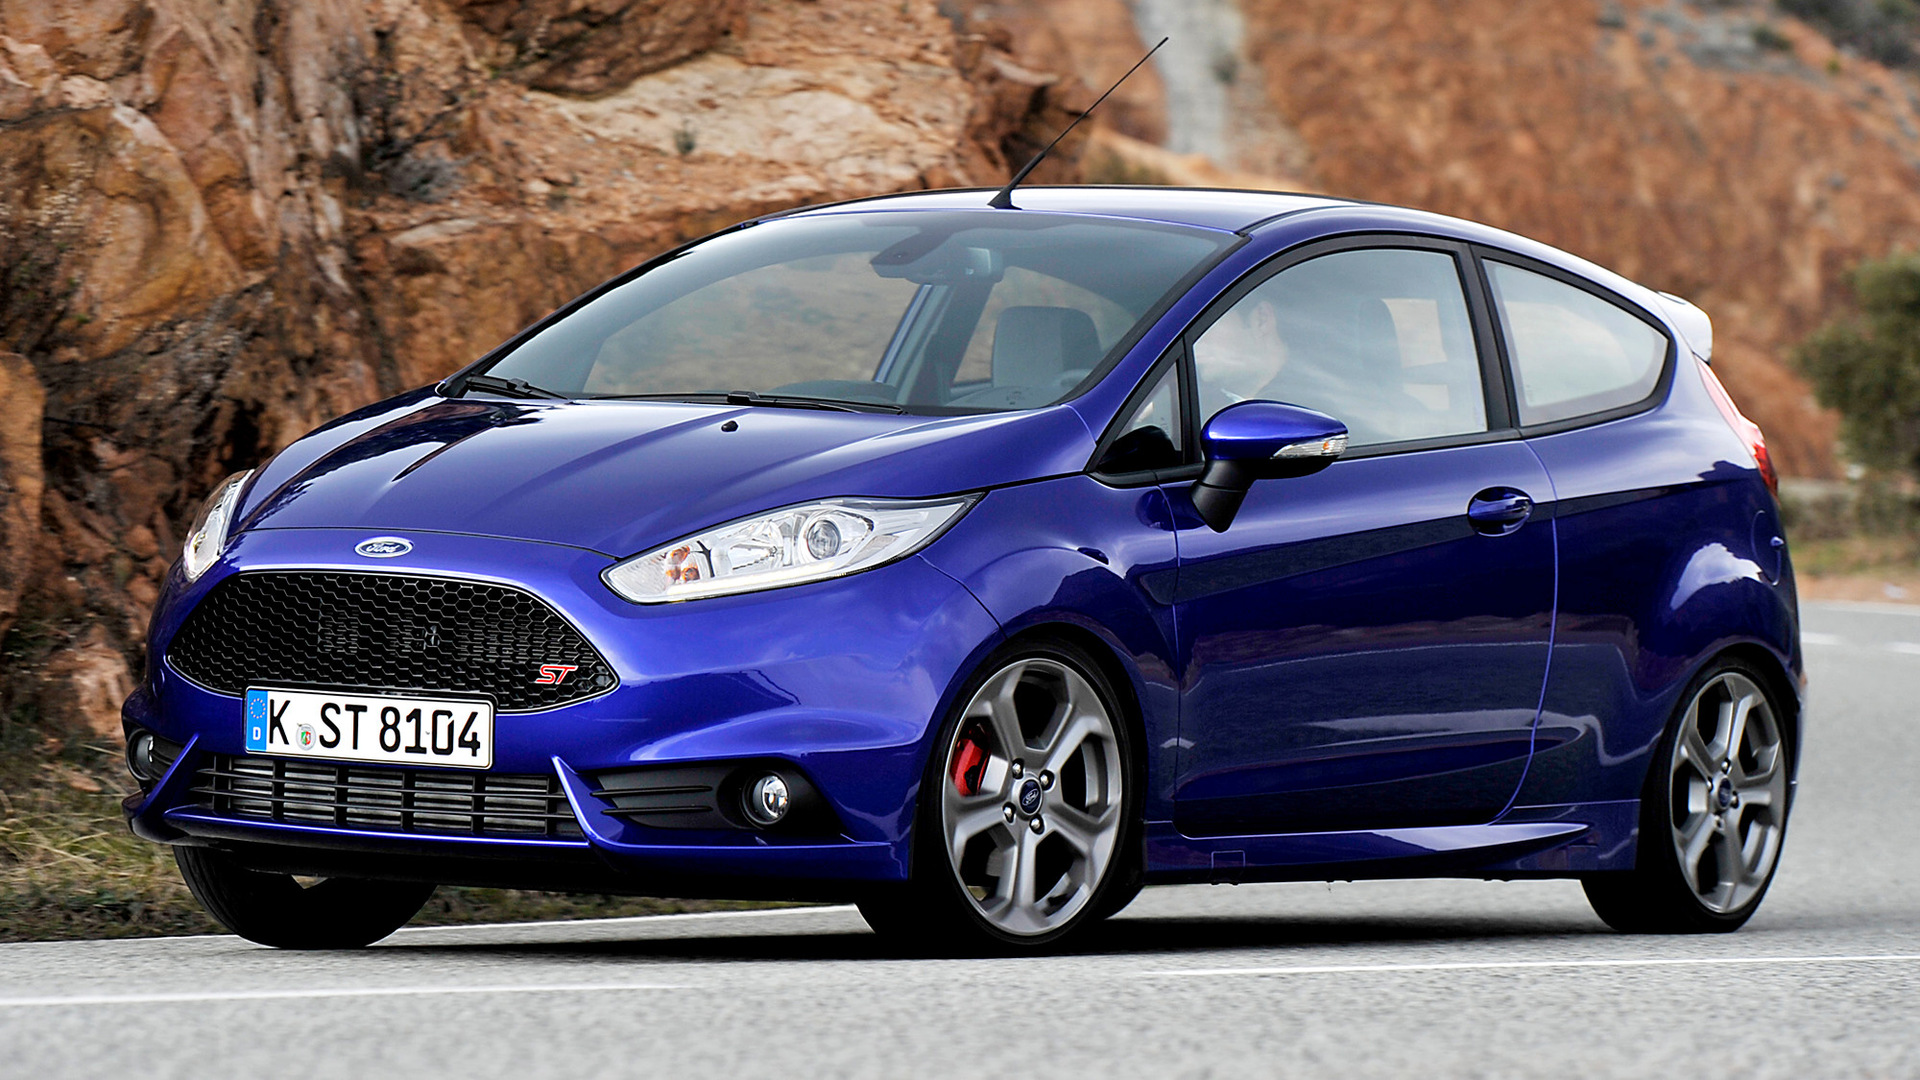 Ford Fiesta St Door Wallpaper Hd